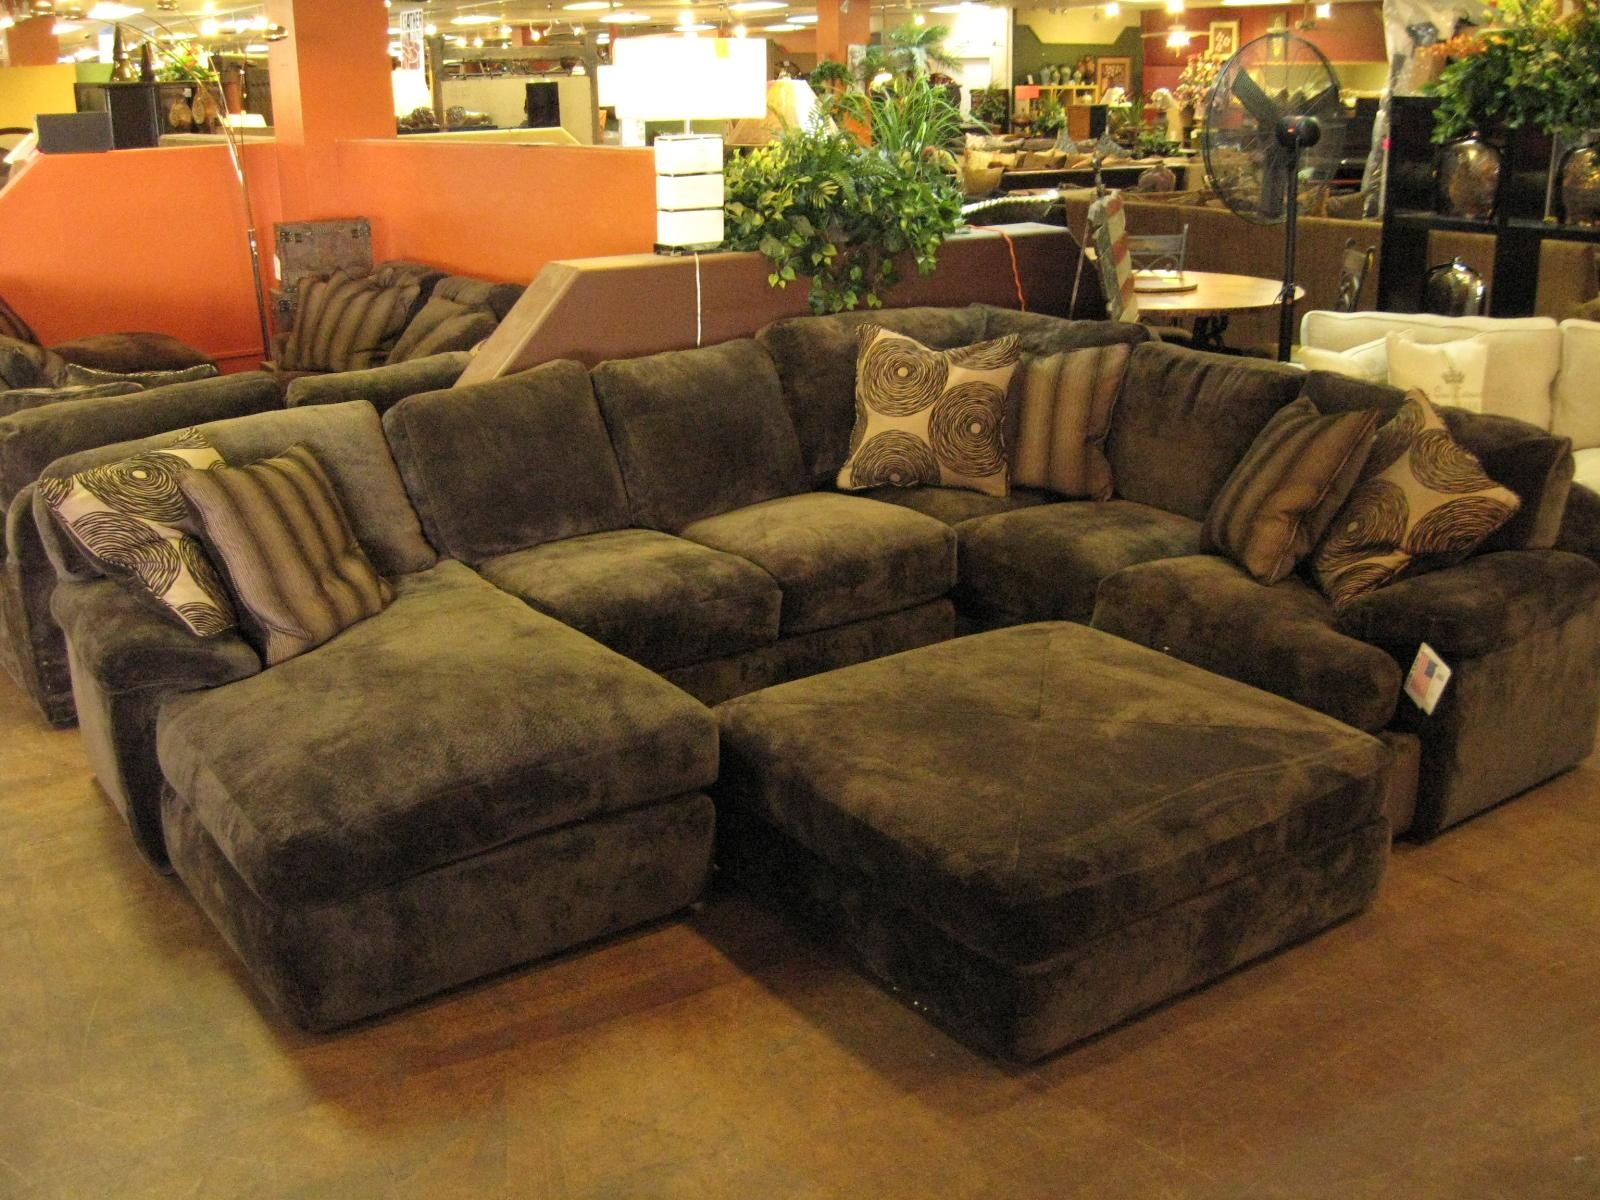 Sofas Center : Wonderful Cheap Rednal Sofa About Remodel Create With Down Filled Sectional Sofa (View 13 of 15)